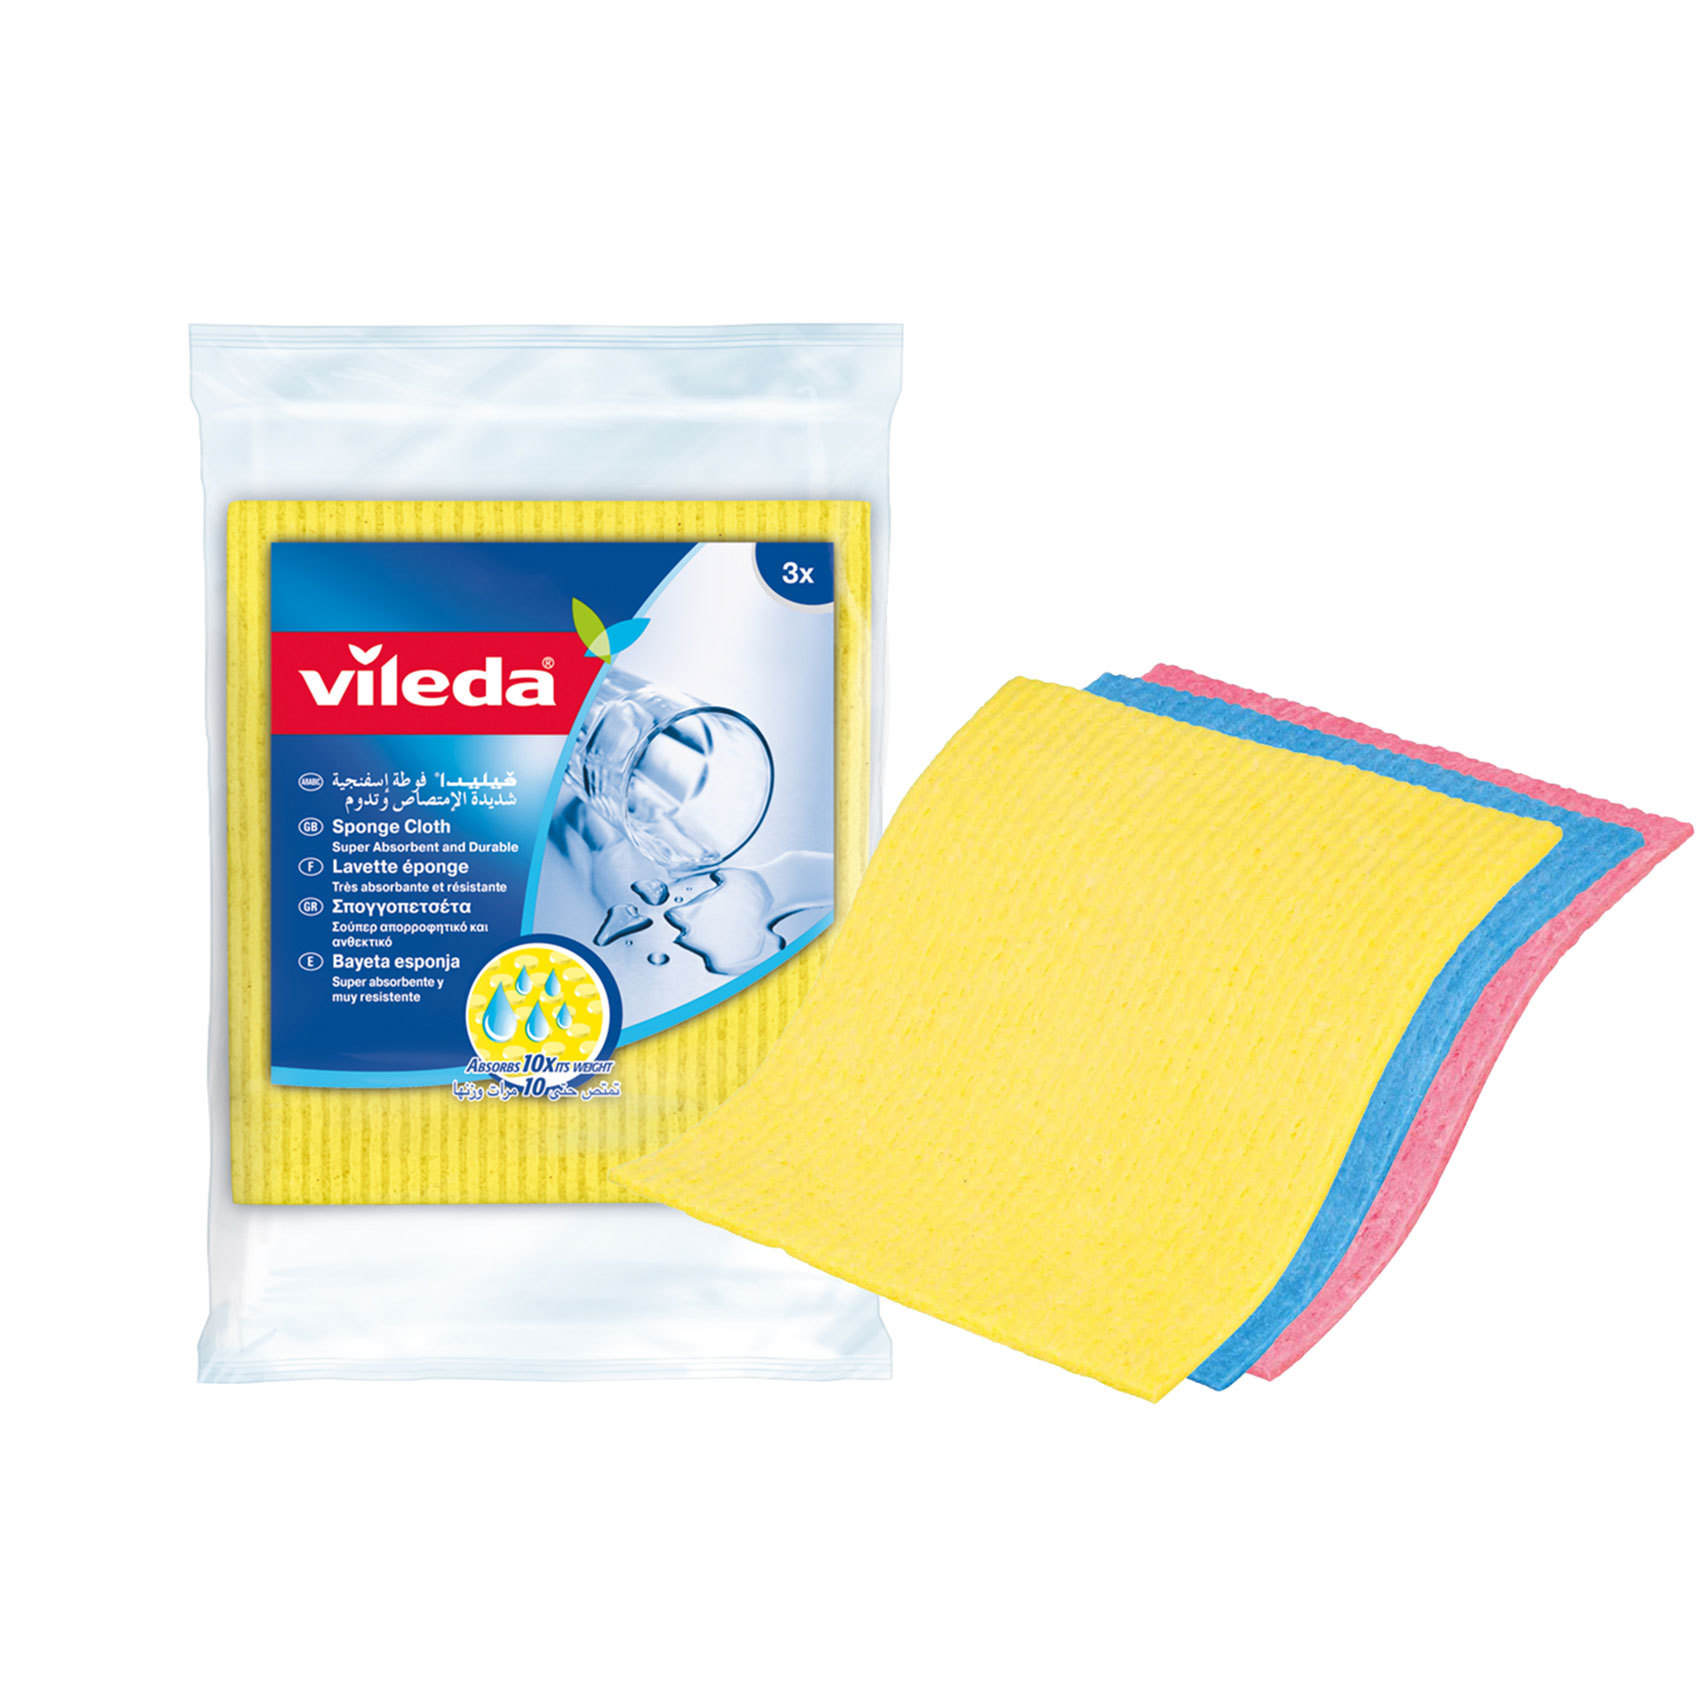 VILEDA SPONGE CLOTH X3